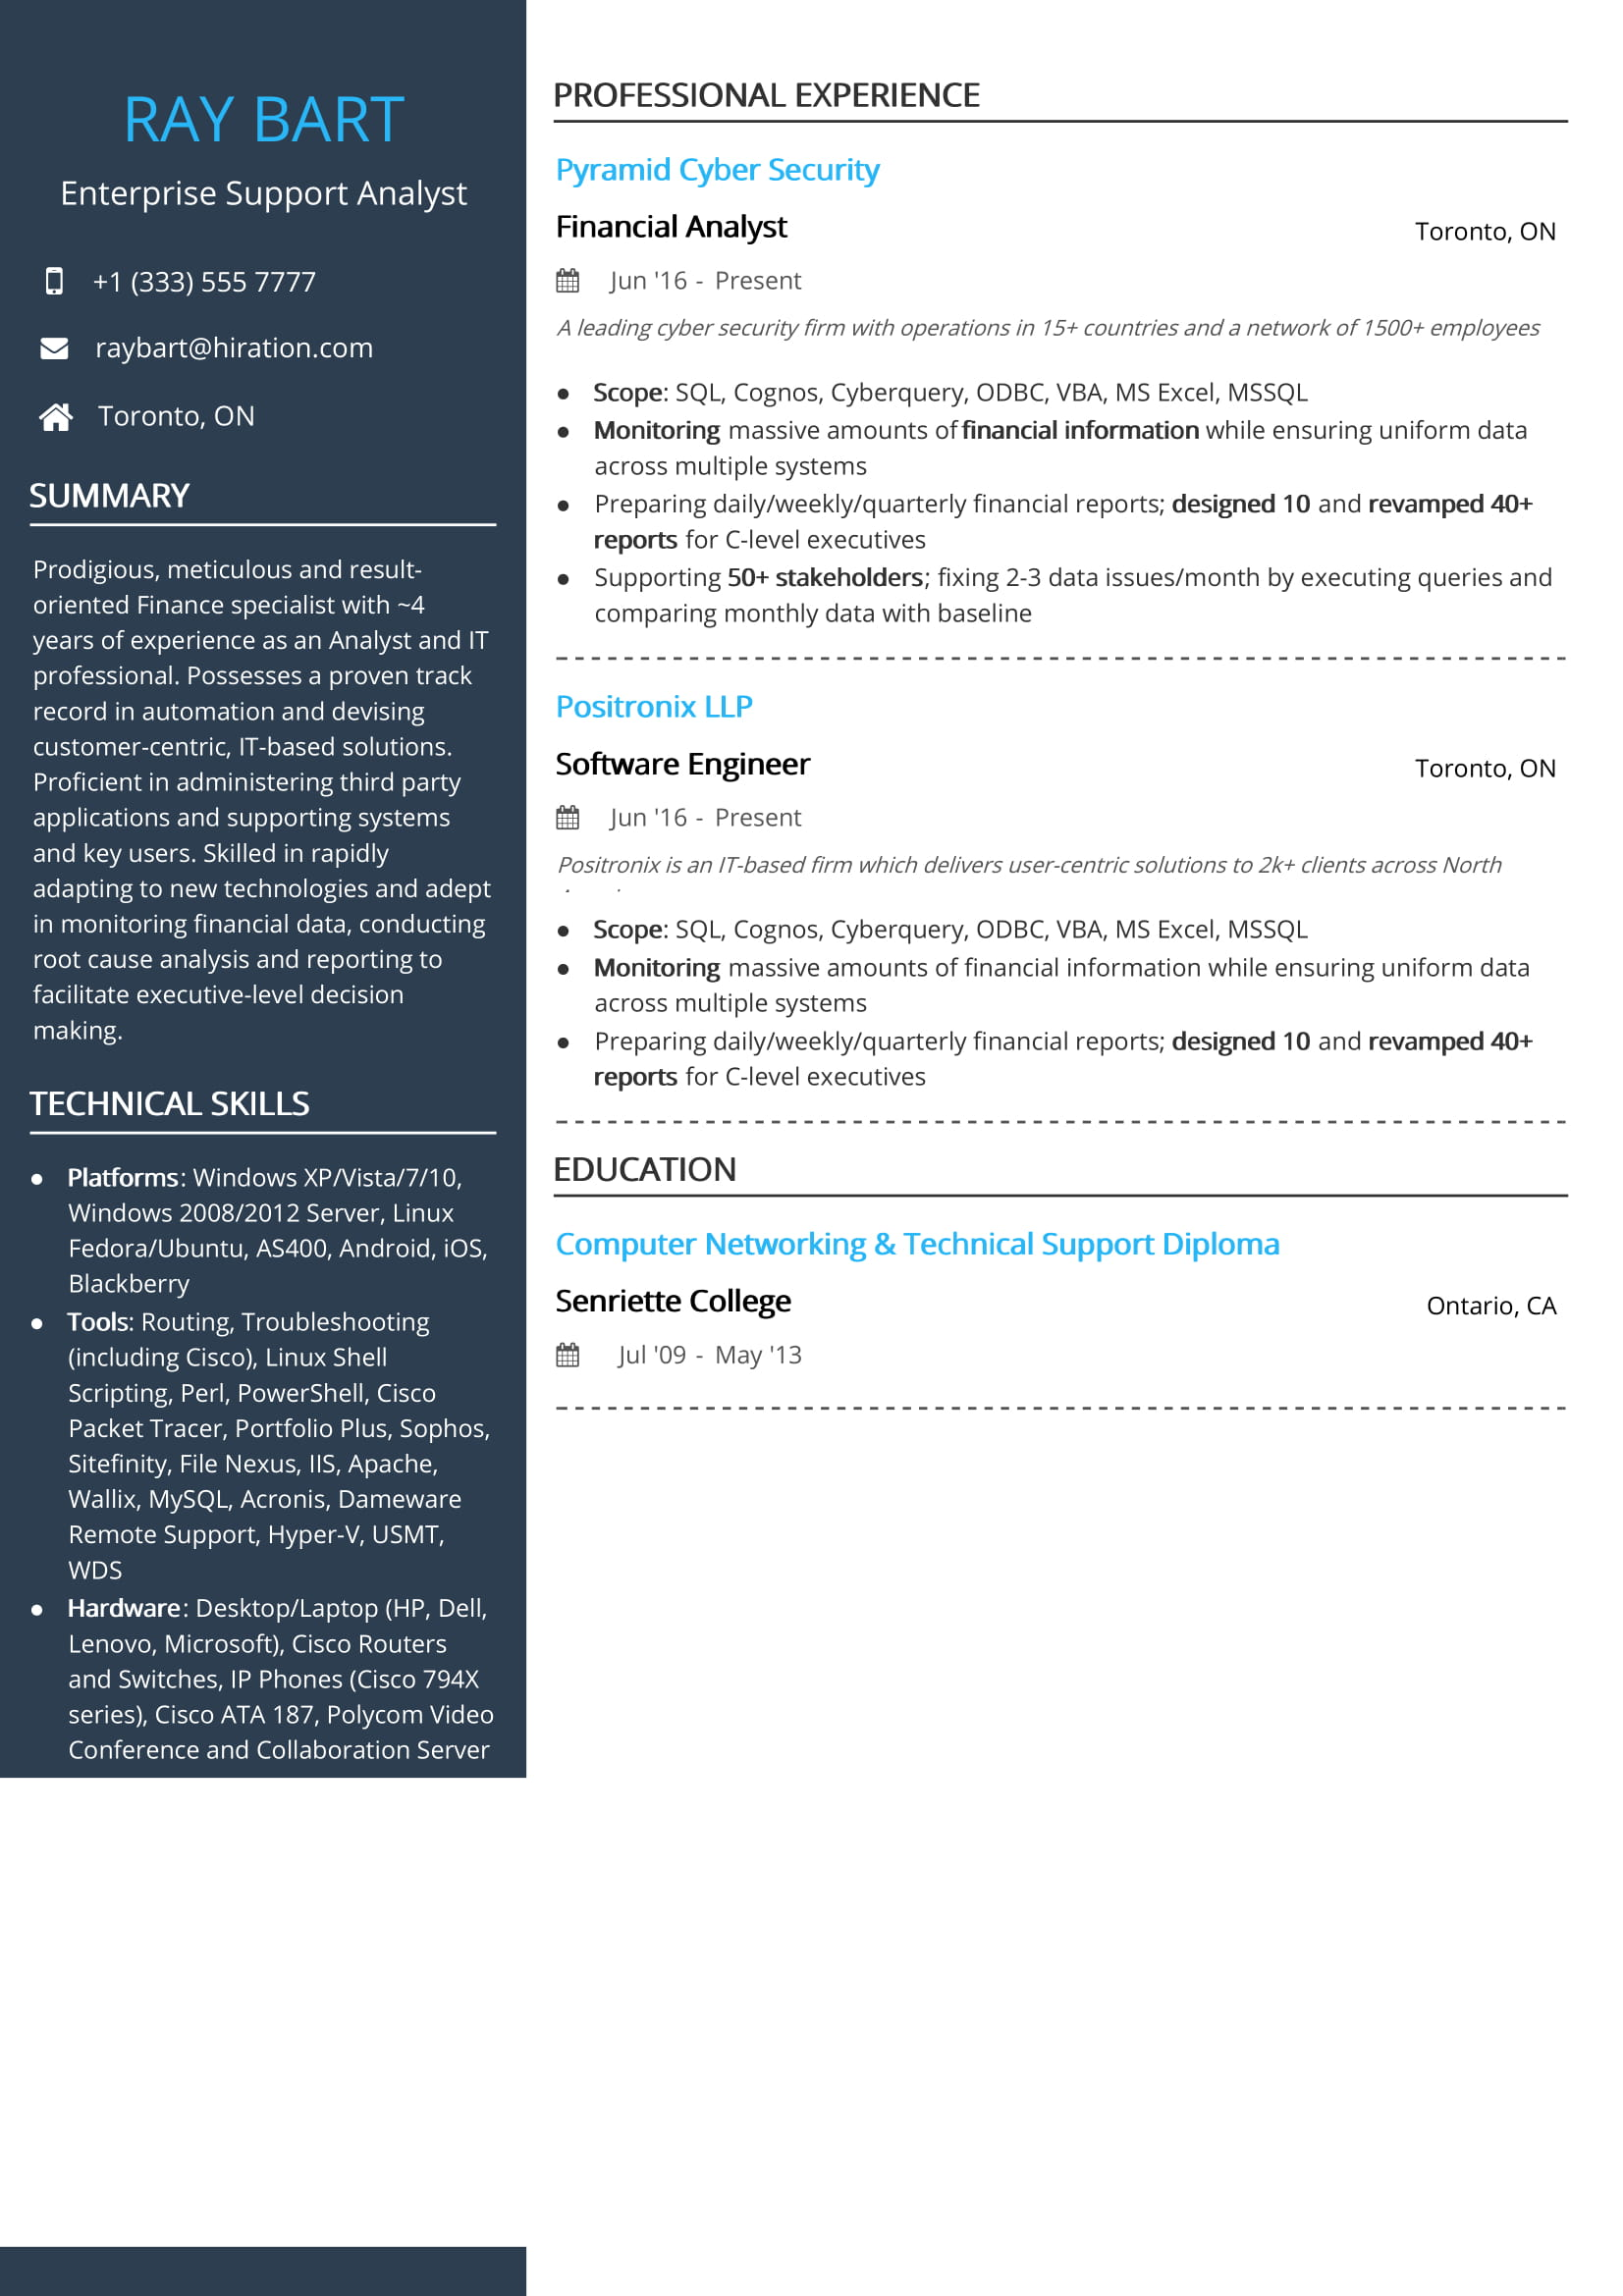 free enterprise support analyst resume sample by hiration specialist toronto modern of Resume Resume Specialist Toronto